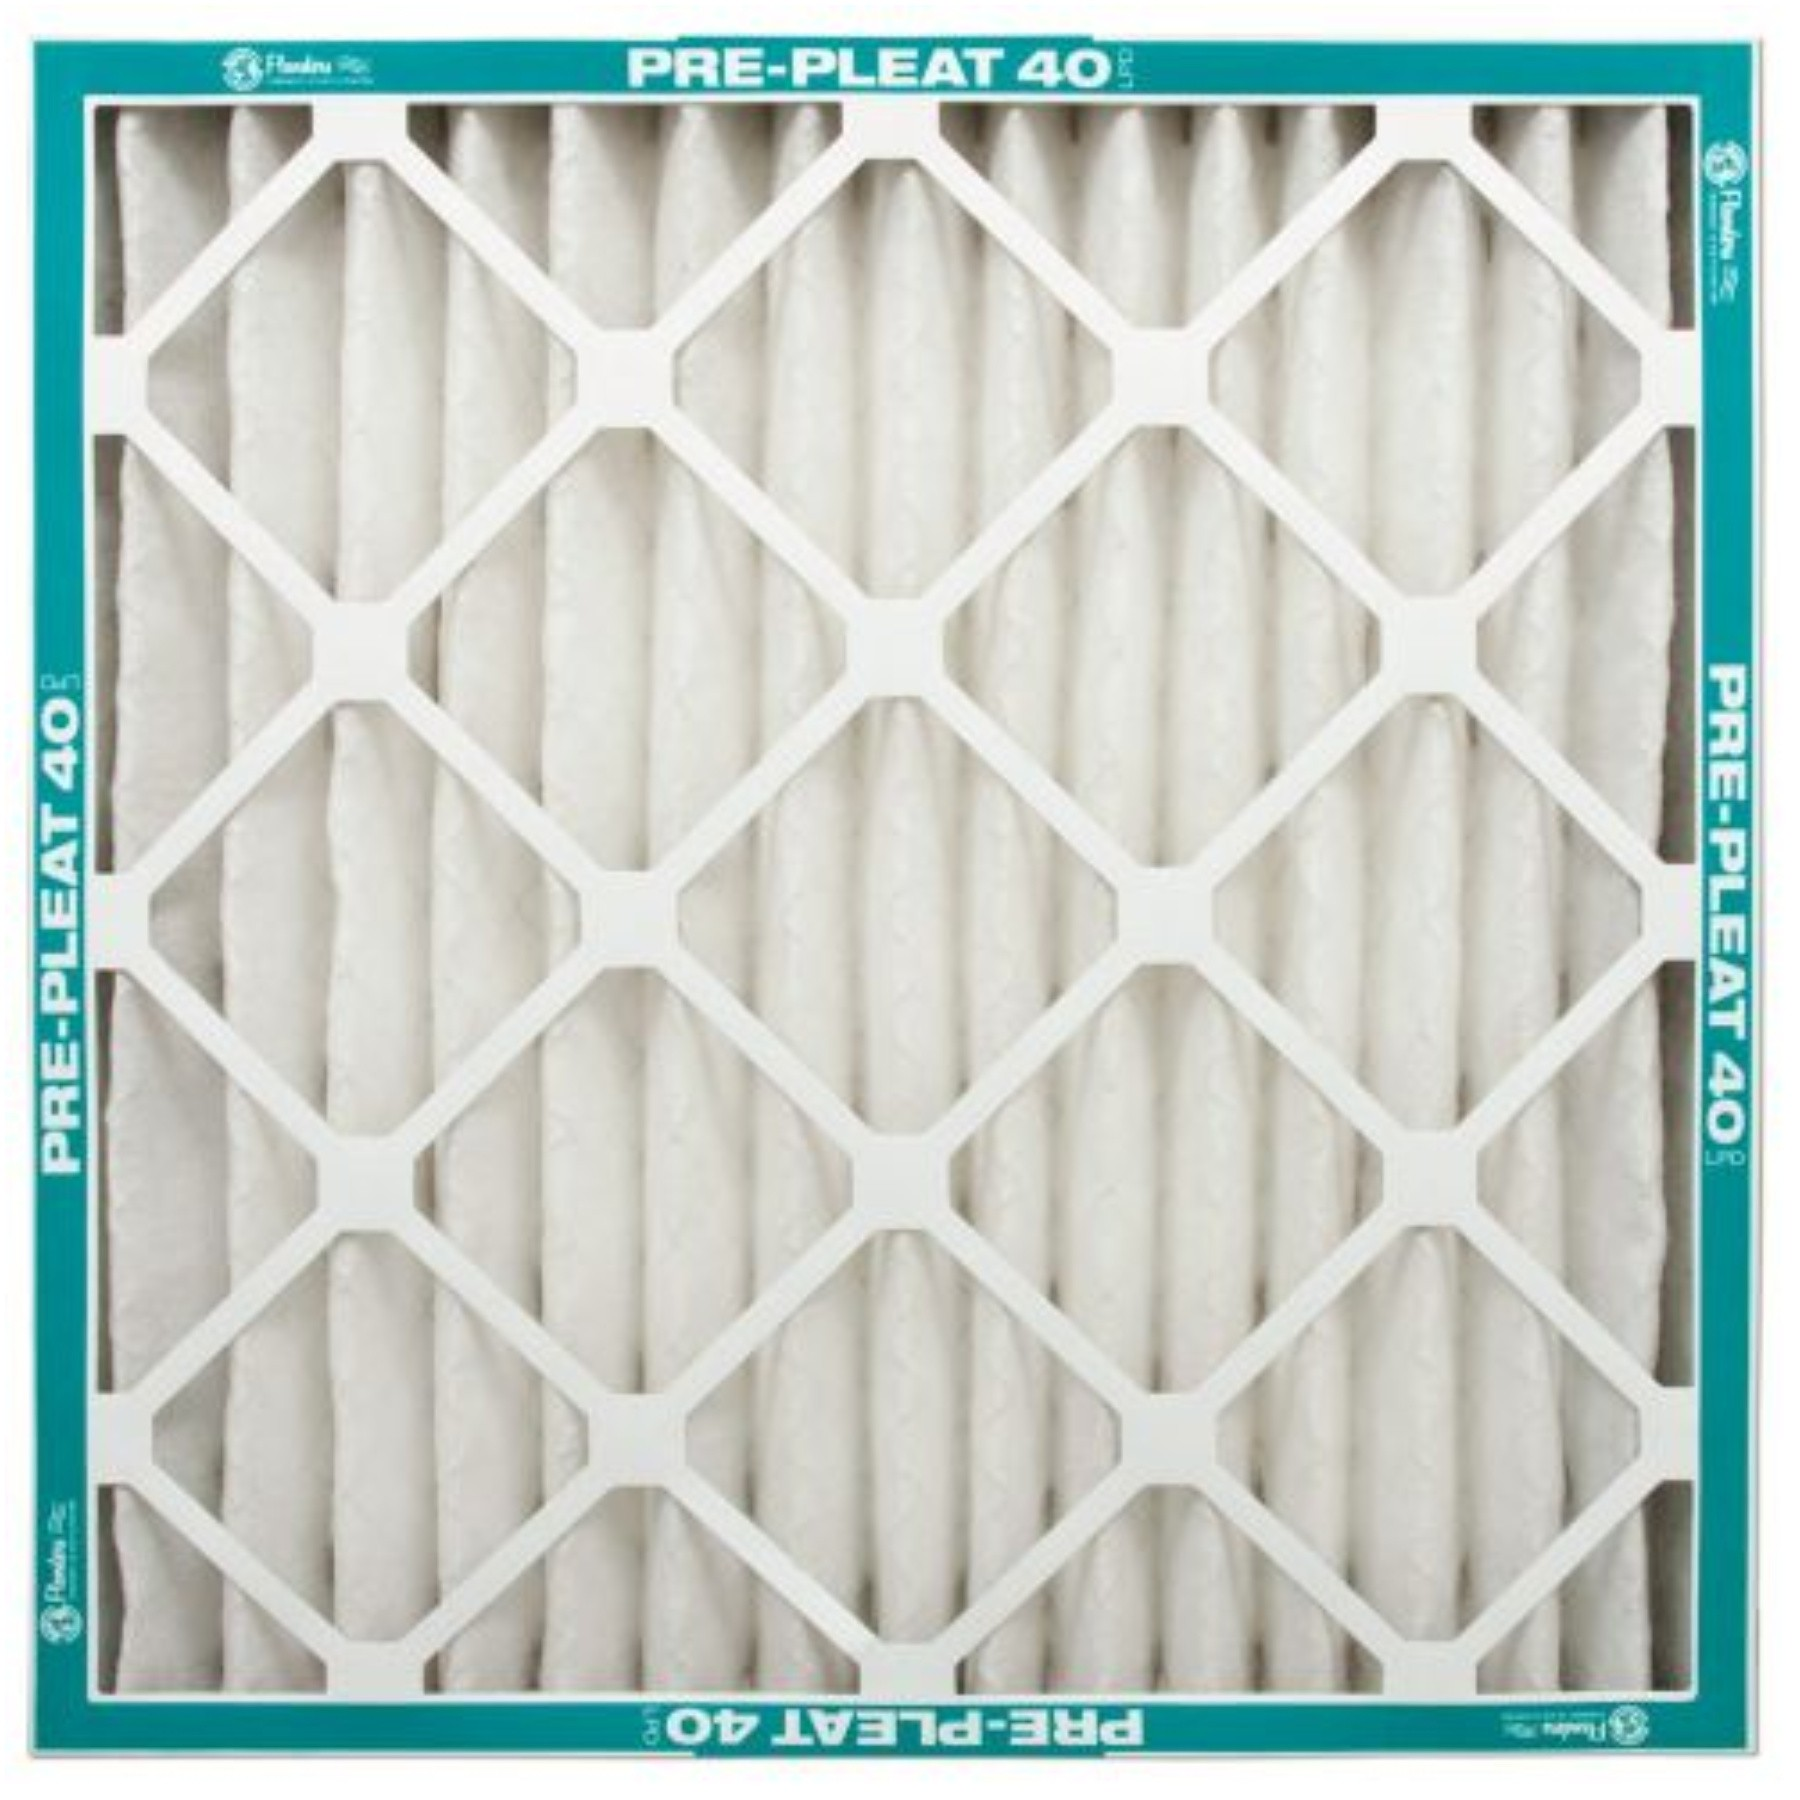 (Open Box)FLANDERS� MERV 8 PRE-PLEAT 40 LPD STANDARD-CAPACITY ECONOMY AIR FILTER, 14X14X1 IN.